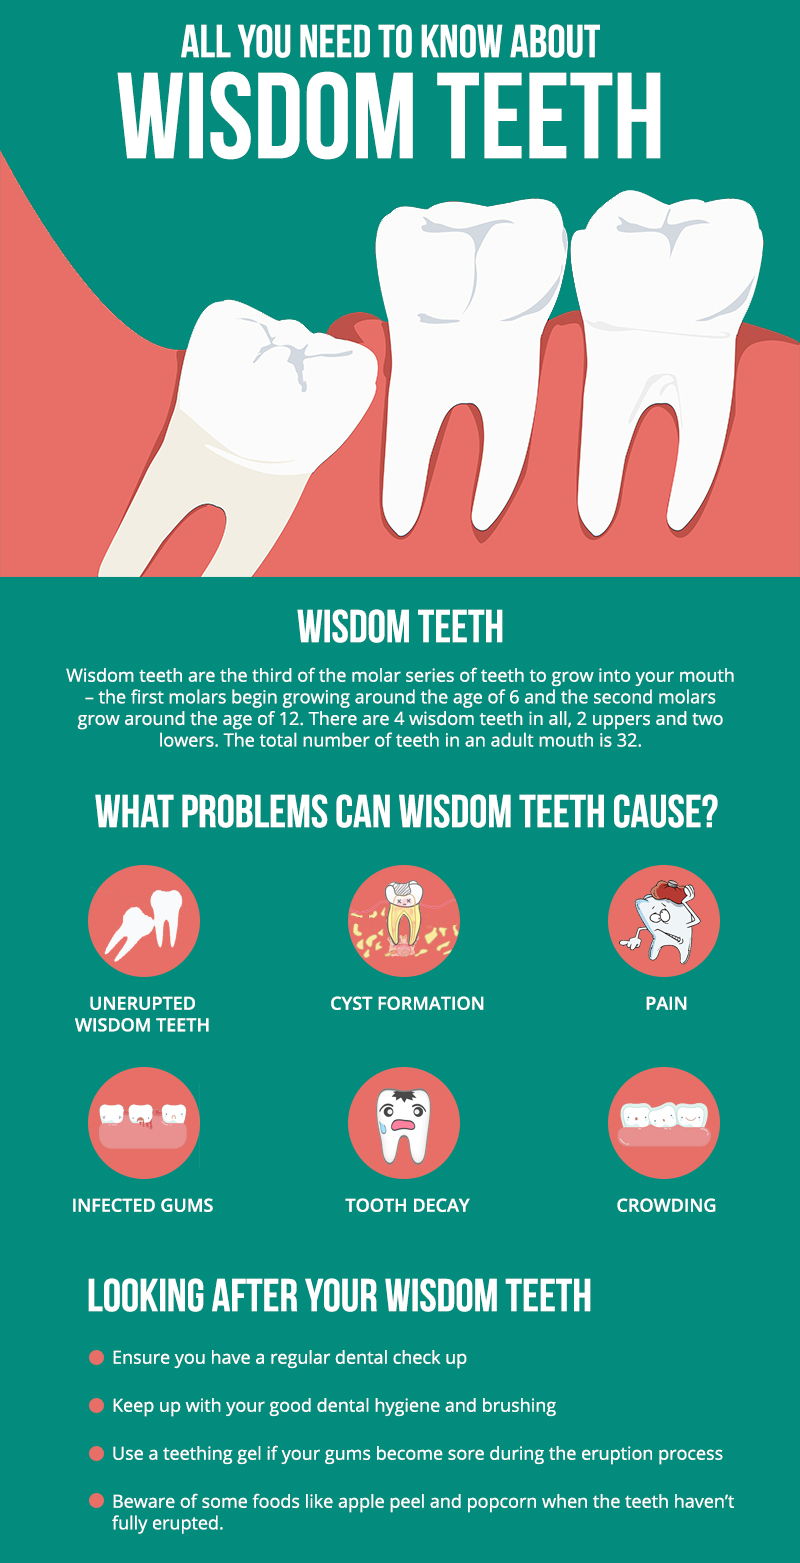 All You Need To Know About Wisdom Teeth